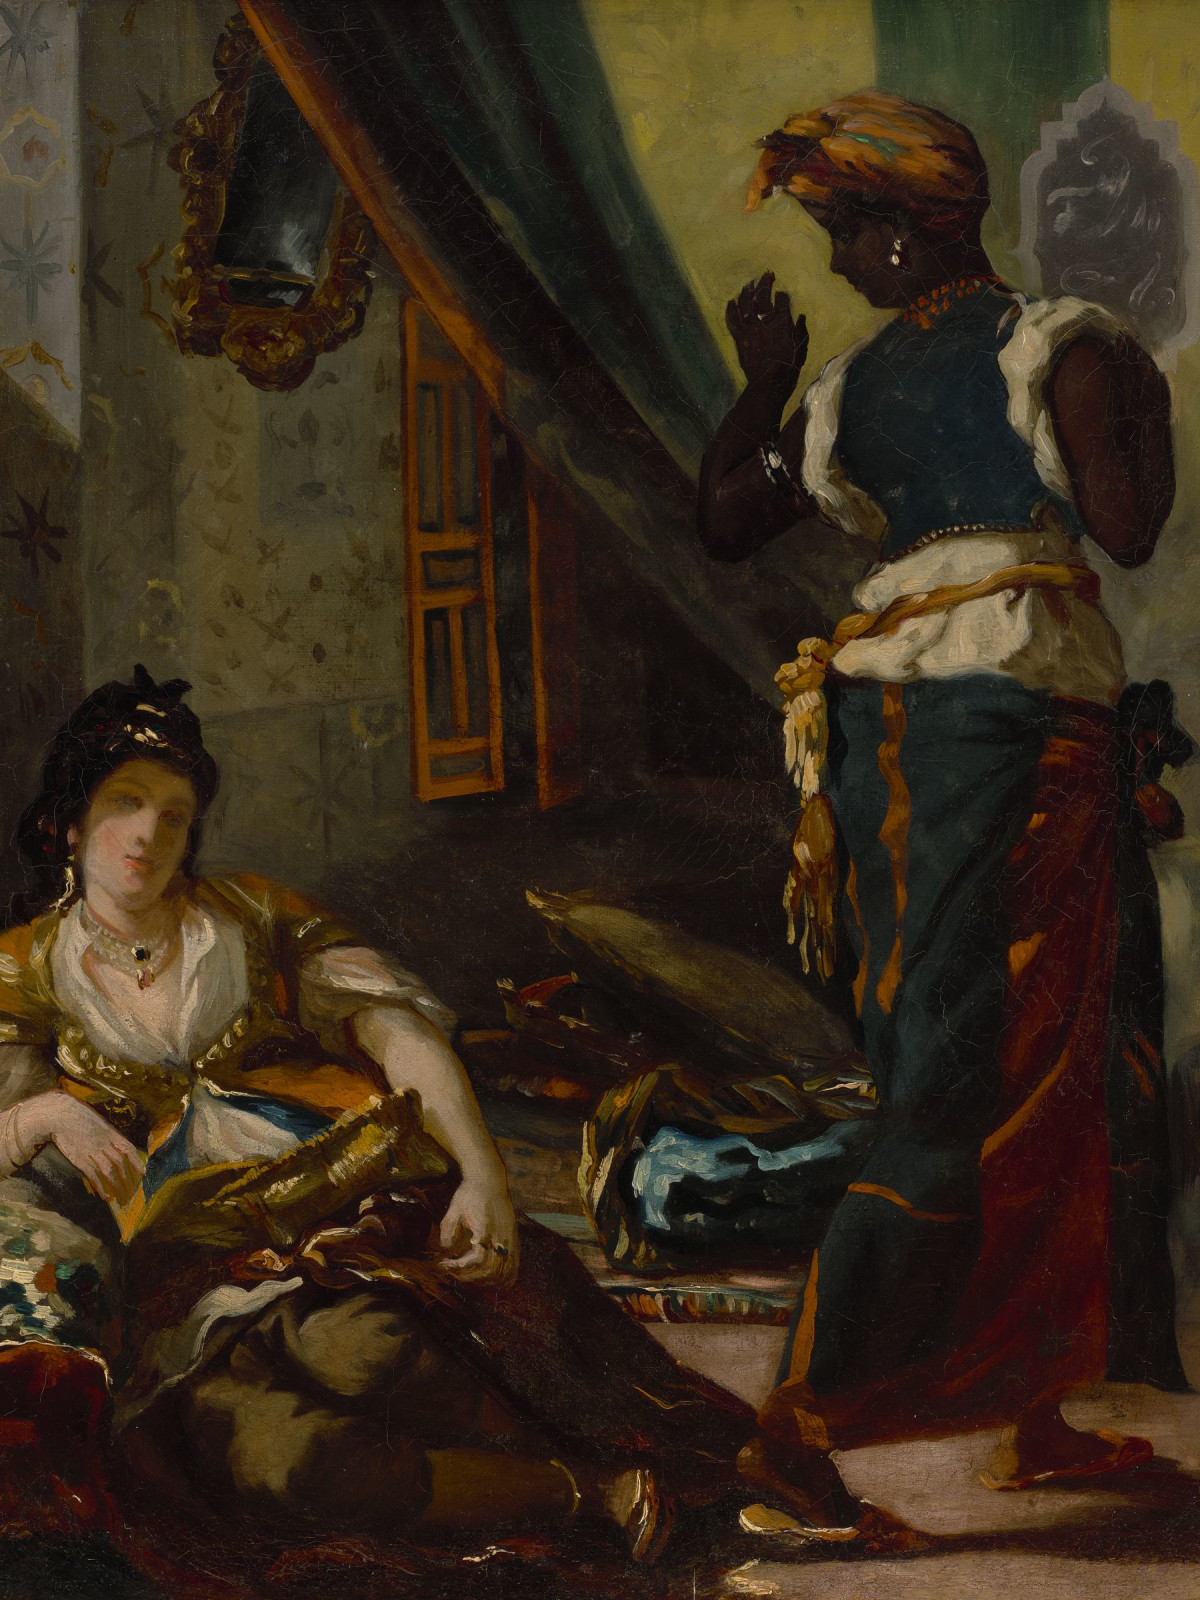 Eugène Delacroix, Women of Algiers in Their Apartment, 1833–34